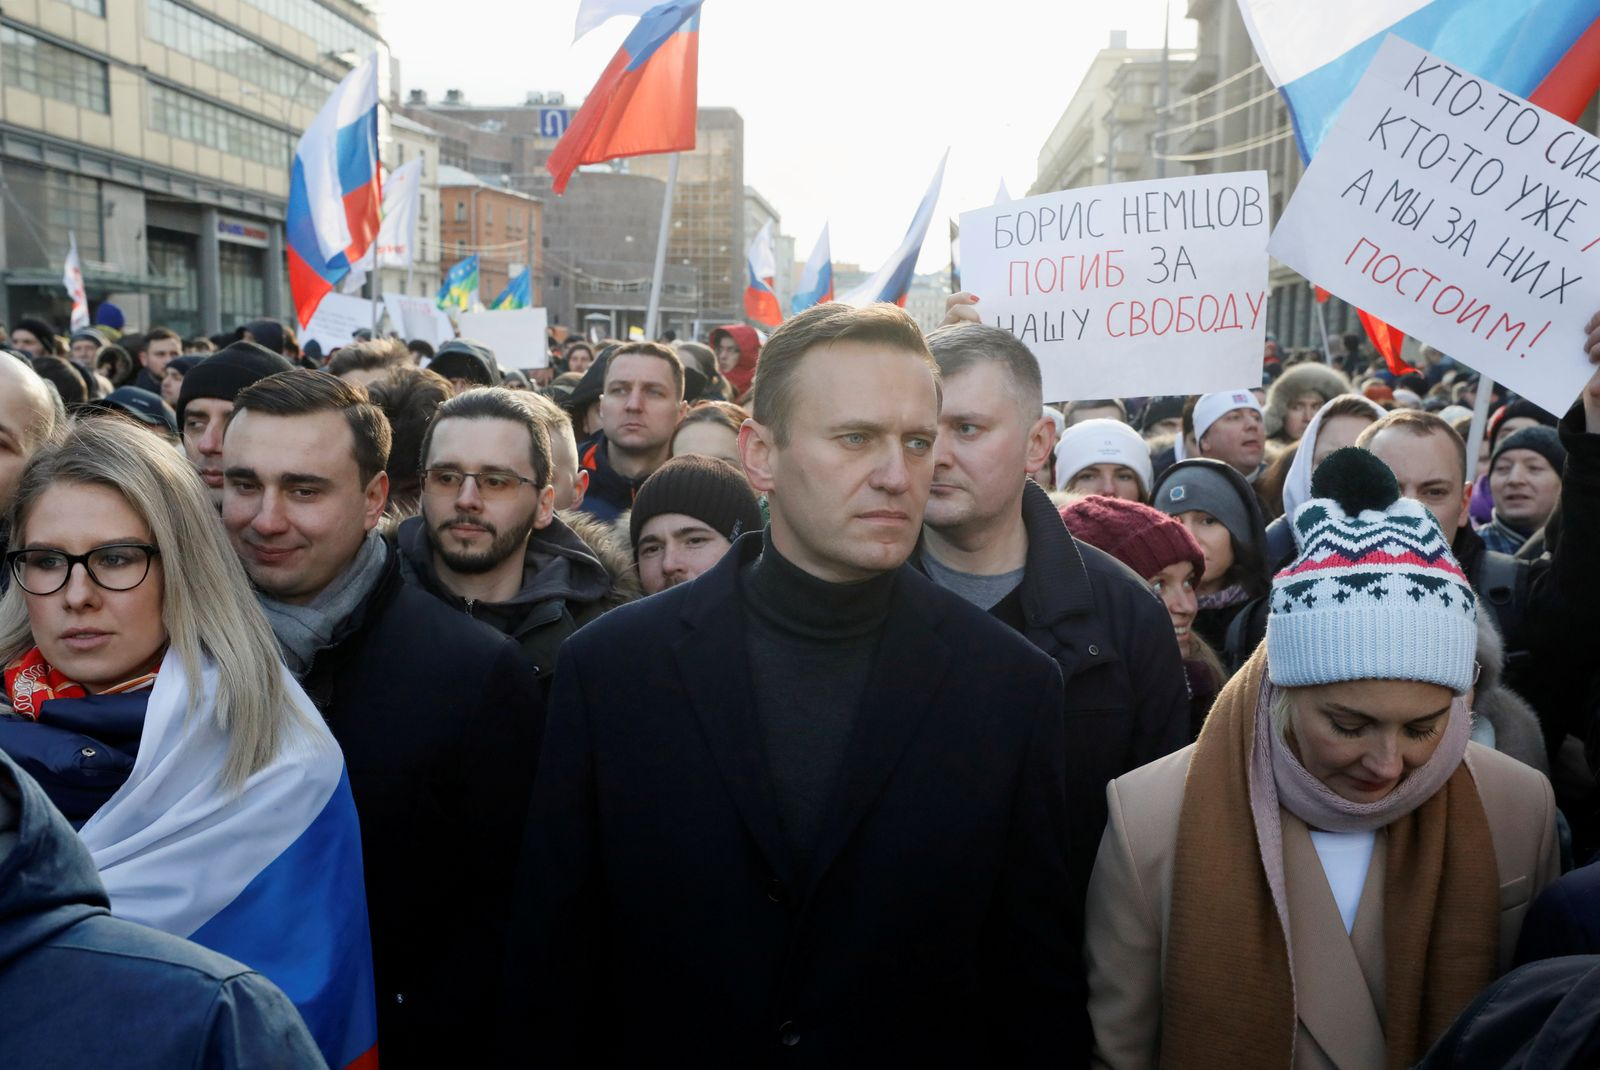 FILE PHOTO: People take part in a rally to mark the 5th anniversary of opposition politician Boris Nemtsov's murder and to protest against proposed amendments to the country's constitution, in Moscow